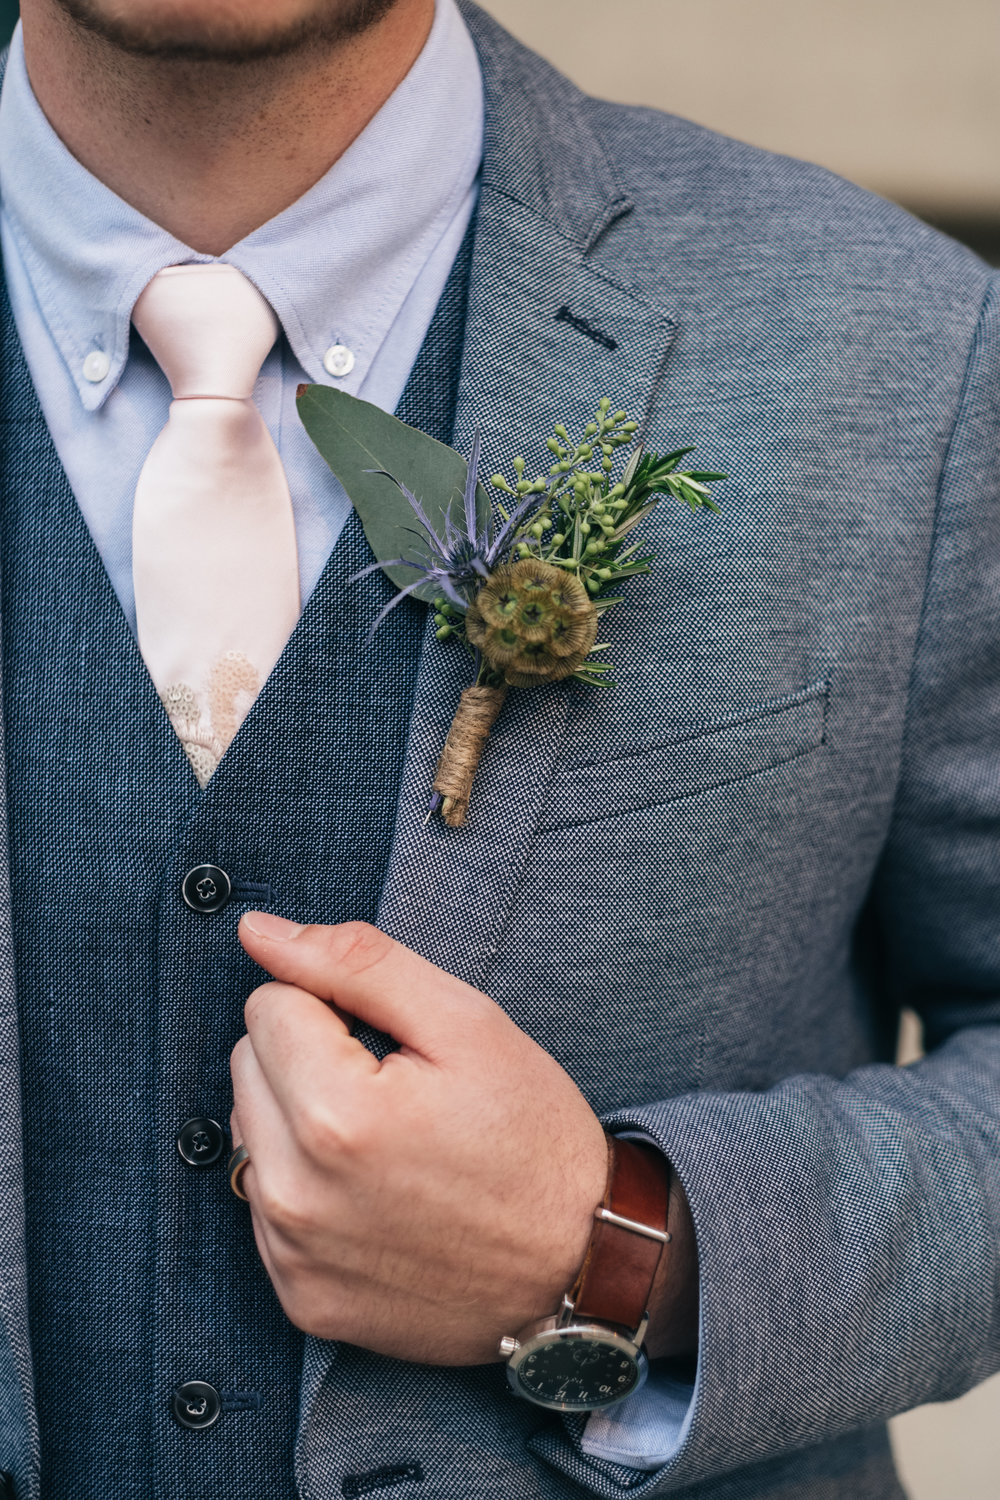 Groom with Floral Designs from La Boutique Nostalgie at Wedding in Toledo Ohio